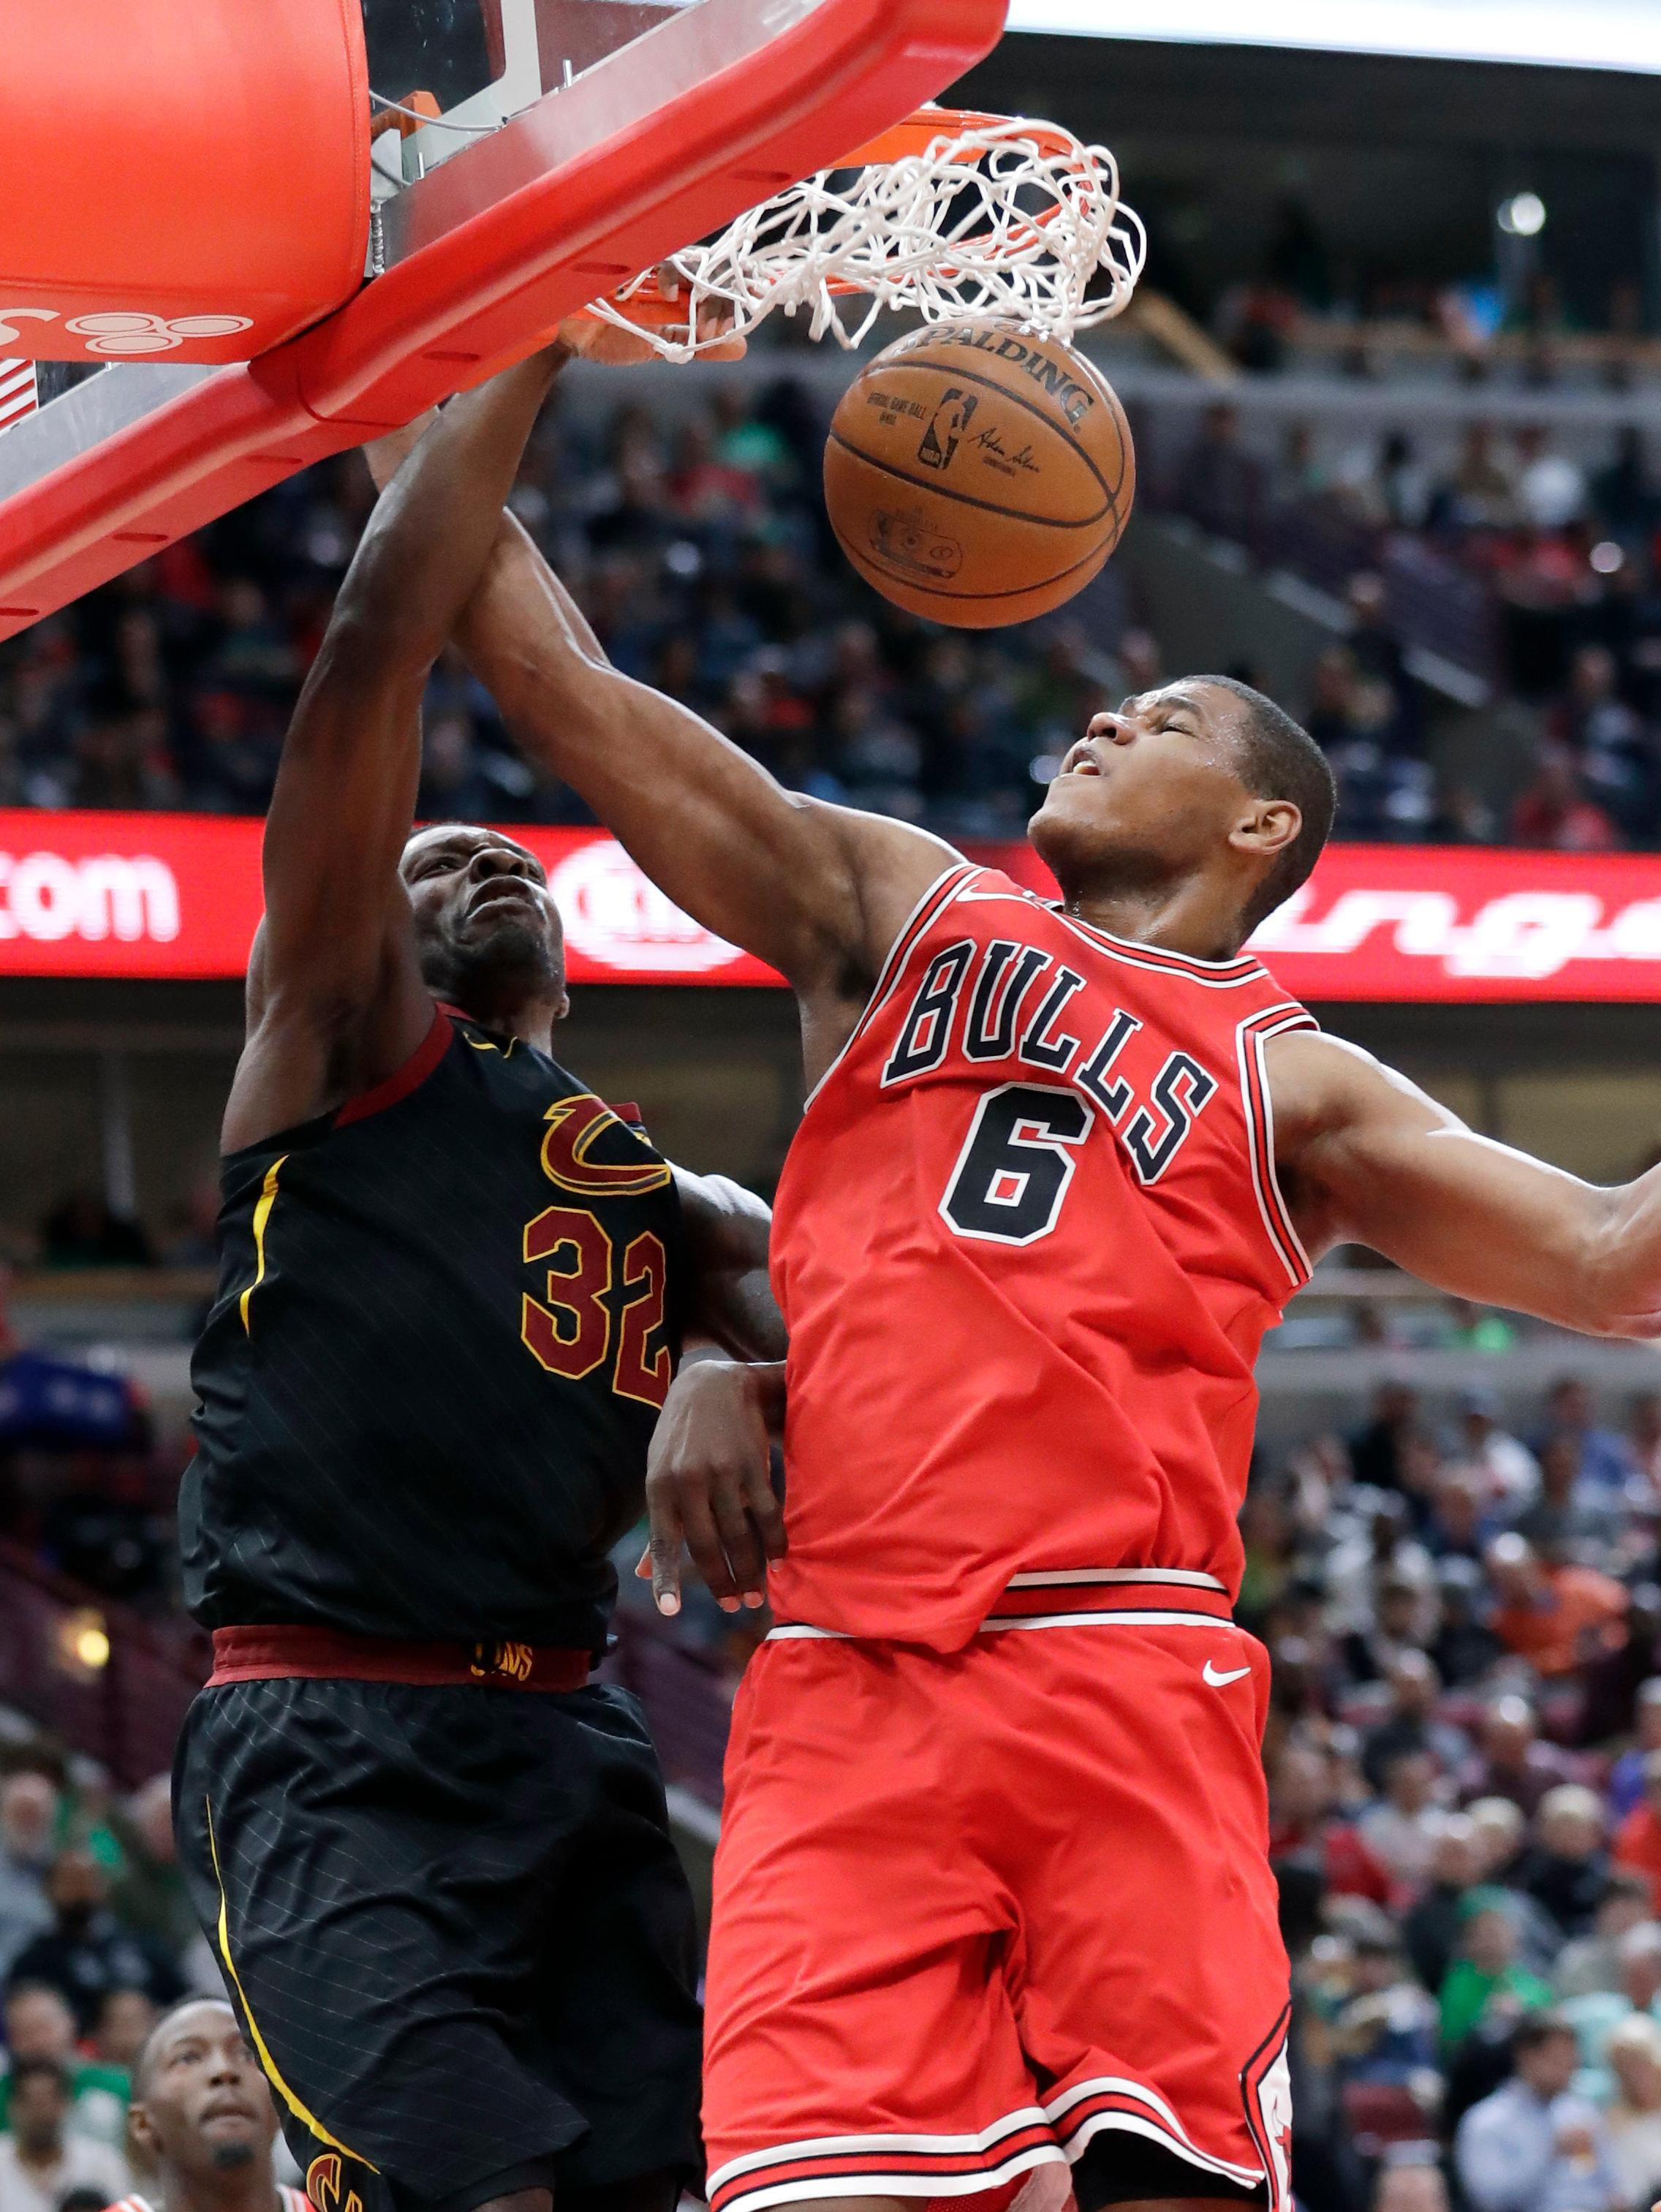 Cleveland Cavaliers forward Jeff Green, left, scores against Chicago Bulls center Cristiano Felicio during the first half of an NBA basketball game Saturday, March 17, 2018, in Chicago. (AP Photo/Nam Y. Huh)